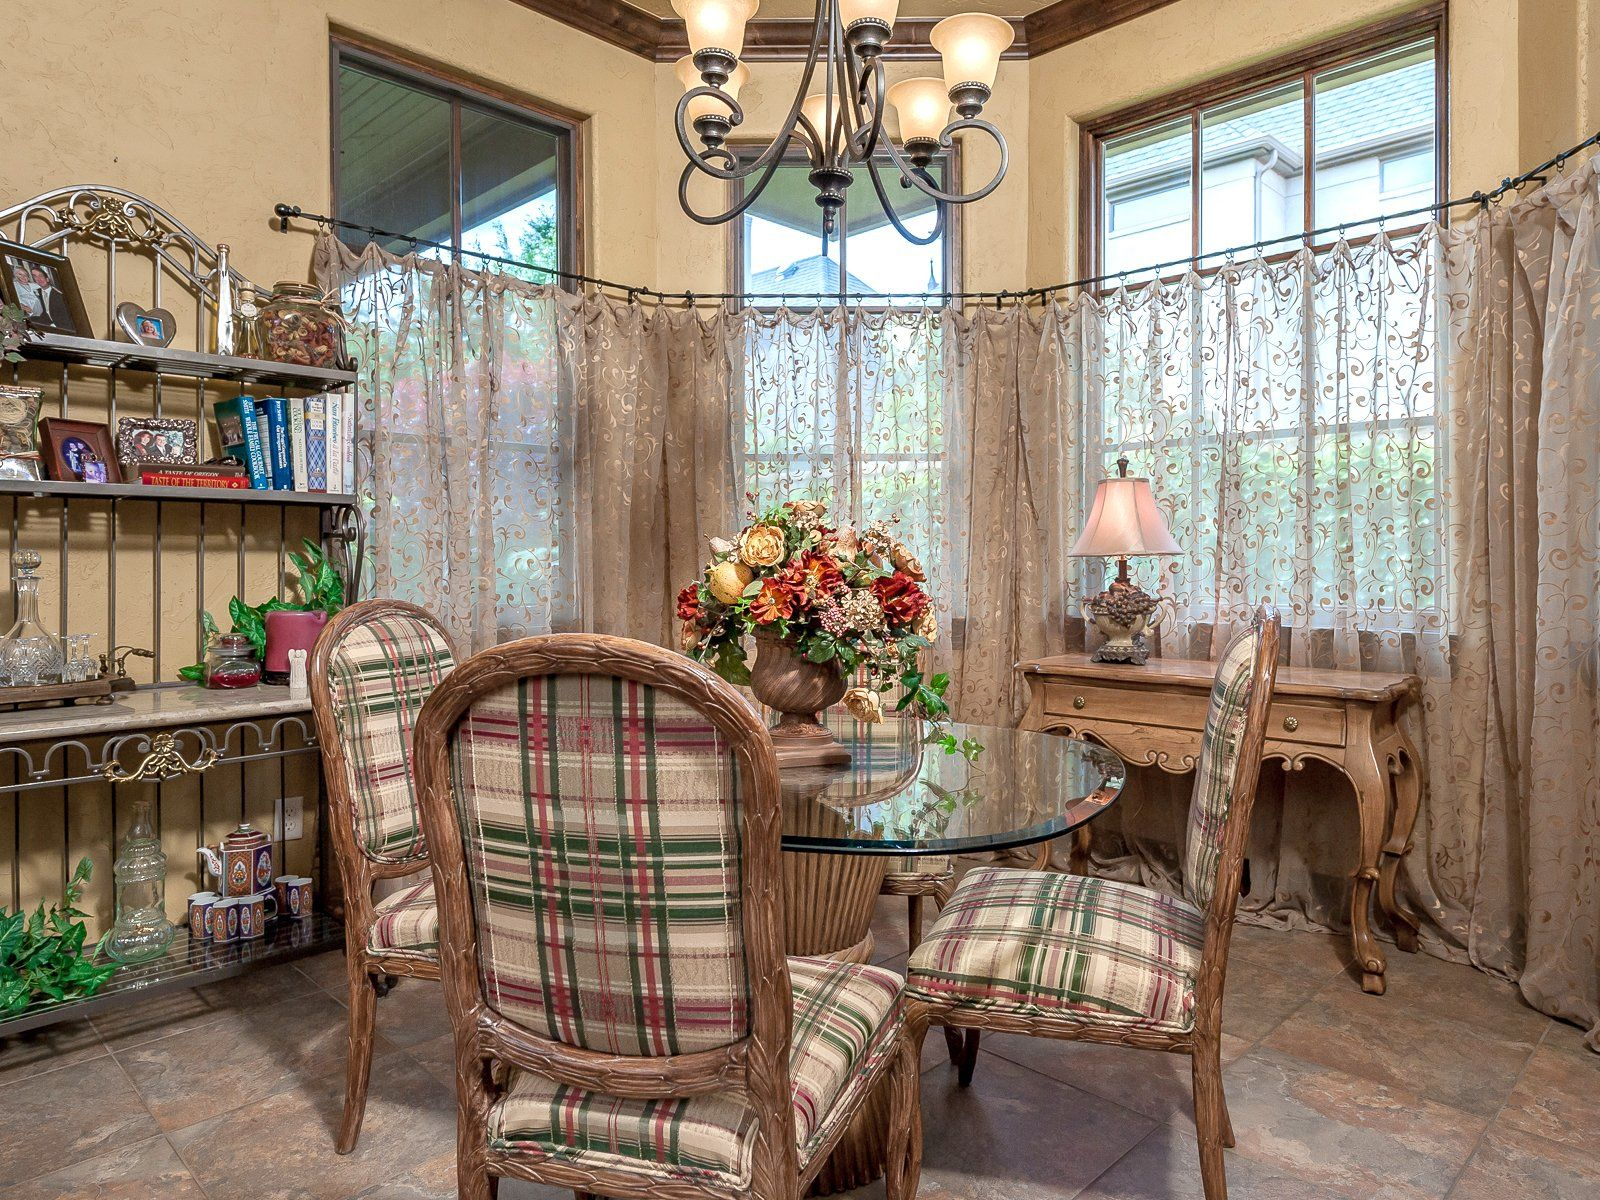 Small Country Dining Room With Sheer Floral Curtains